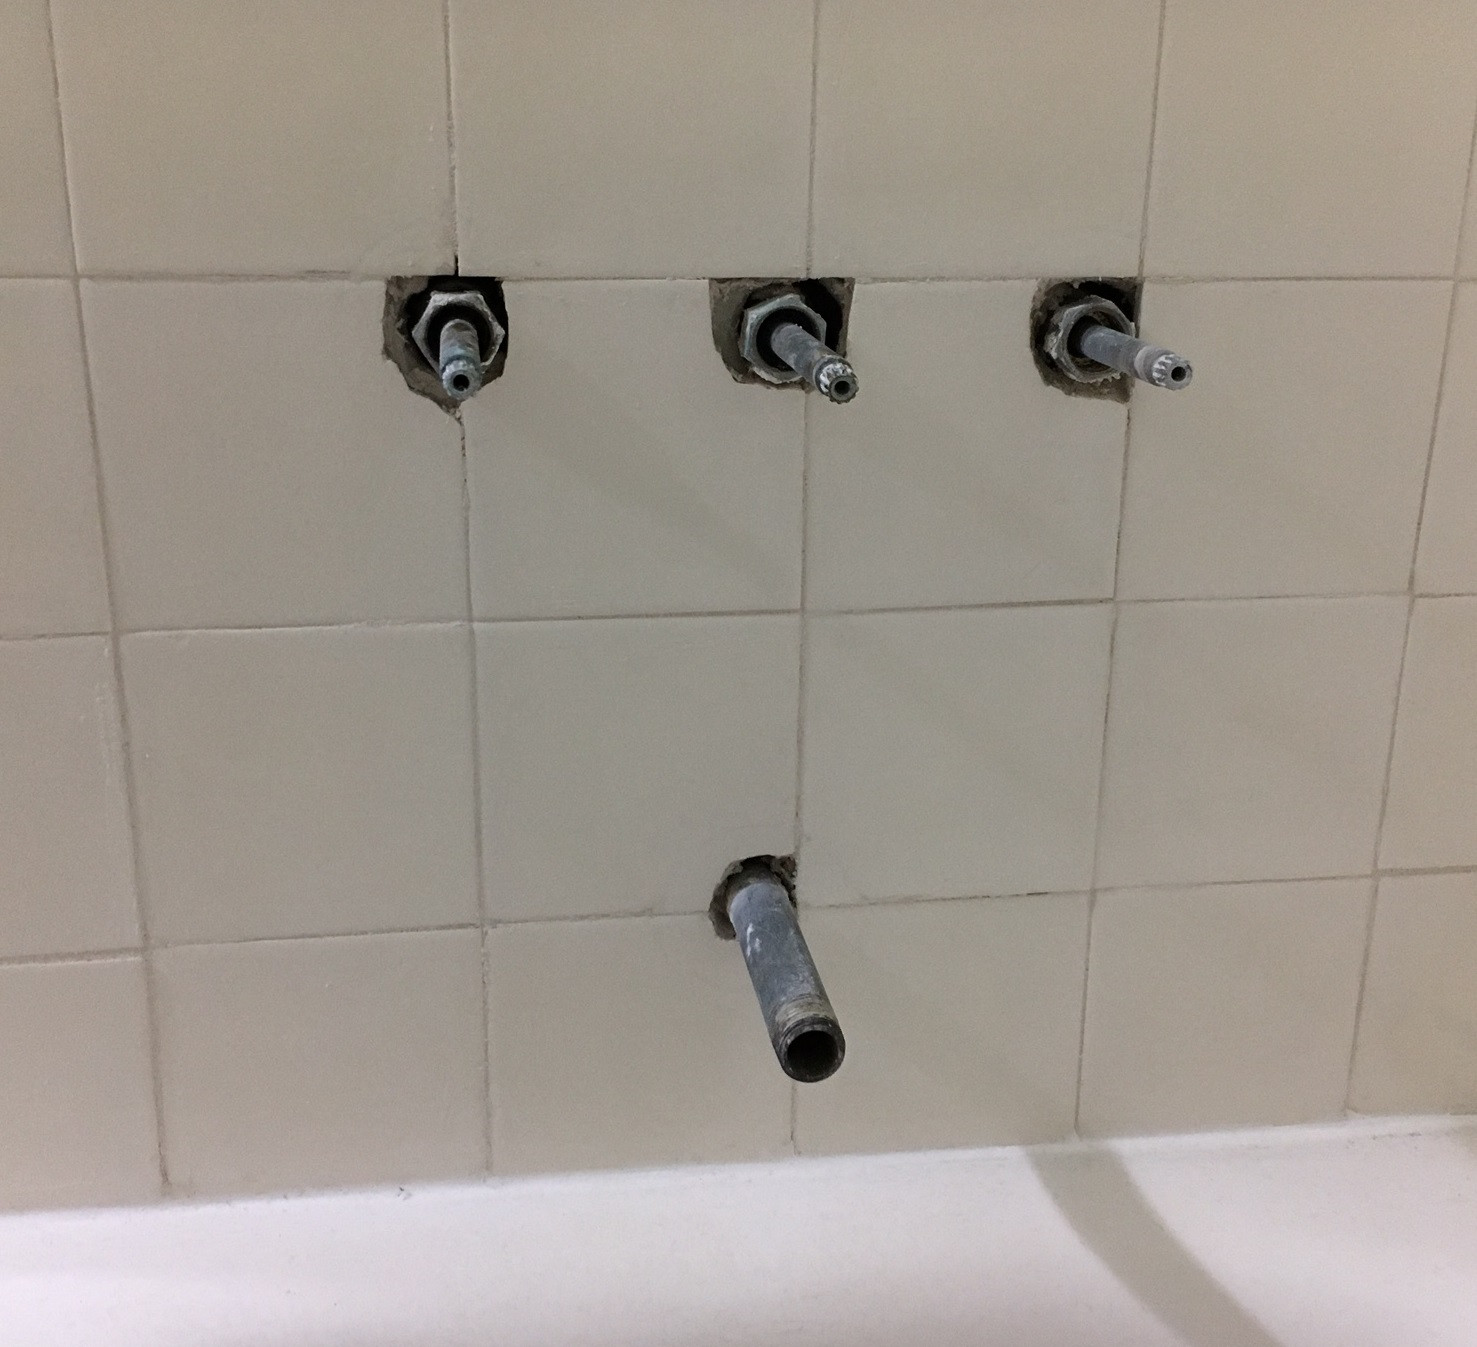 how can i find bath faucet handles that